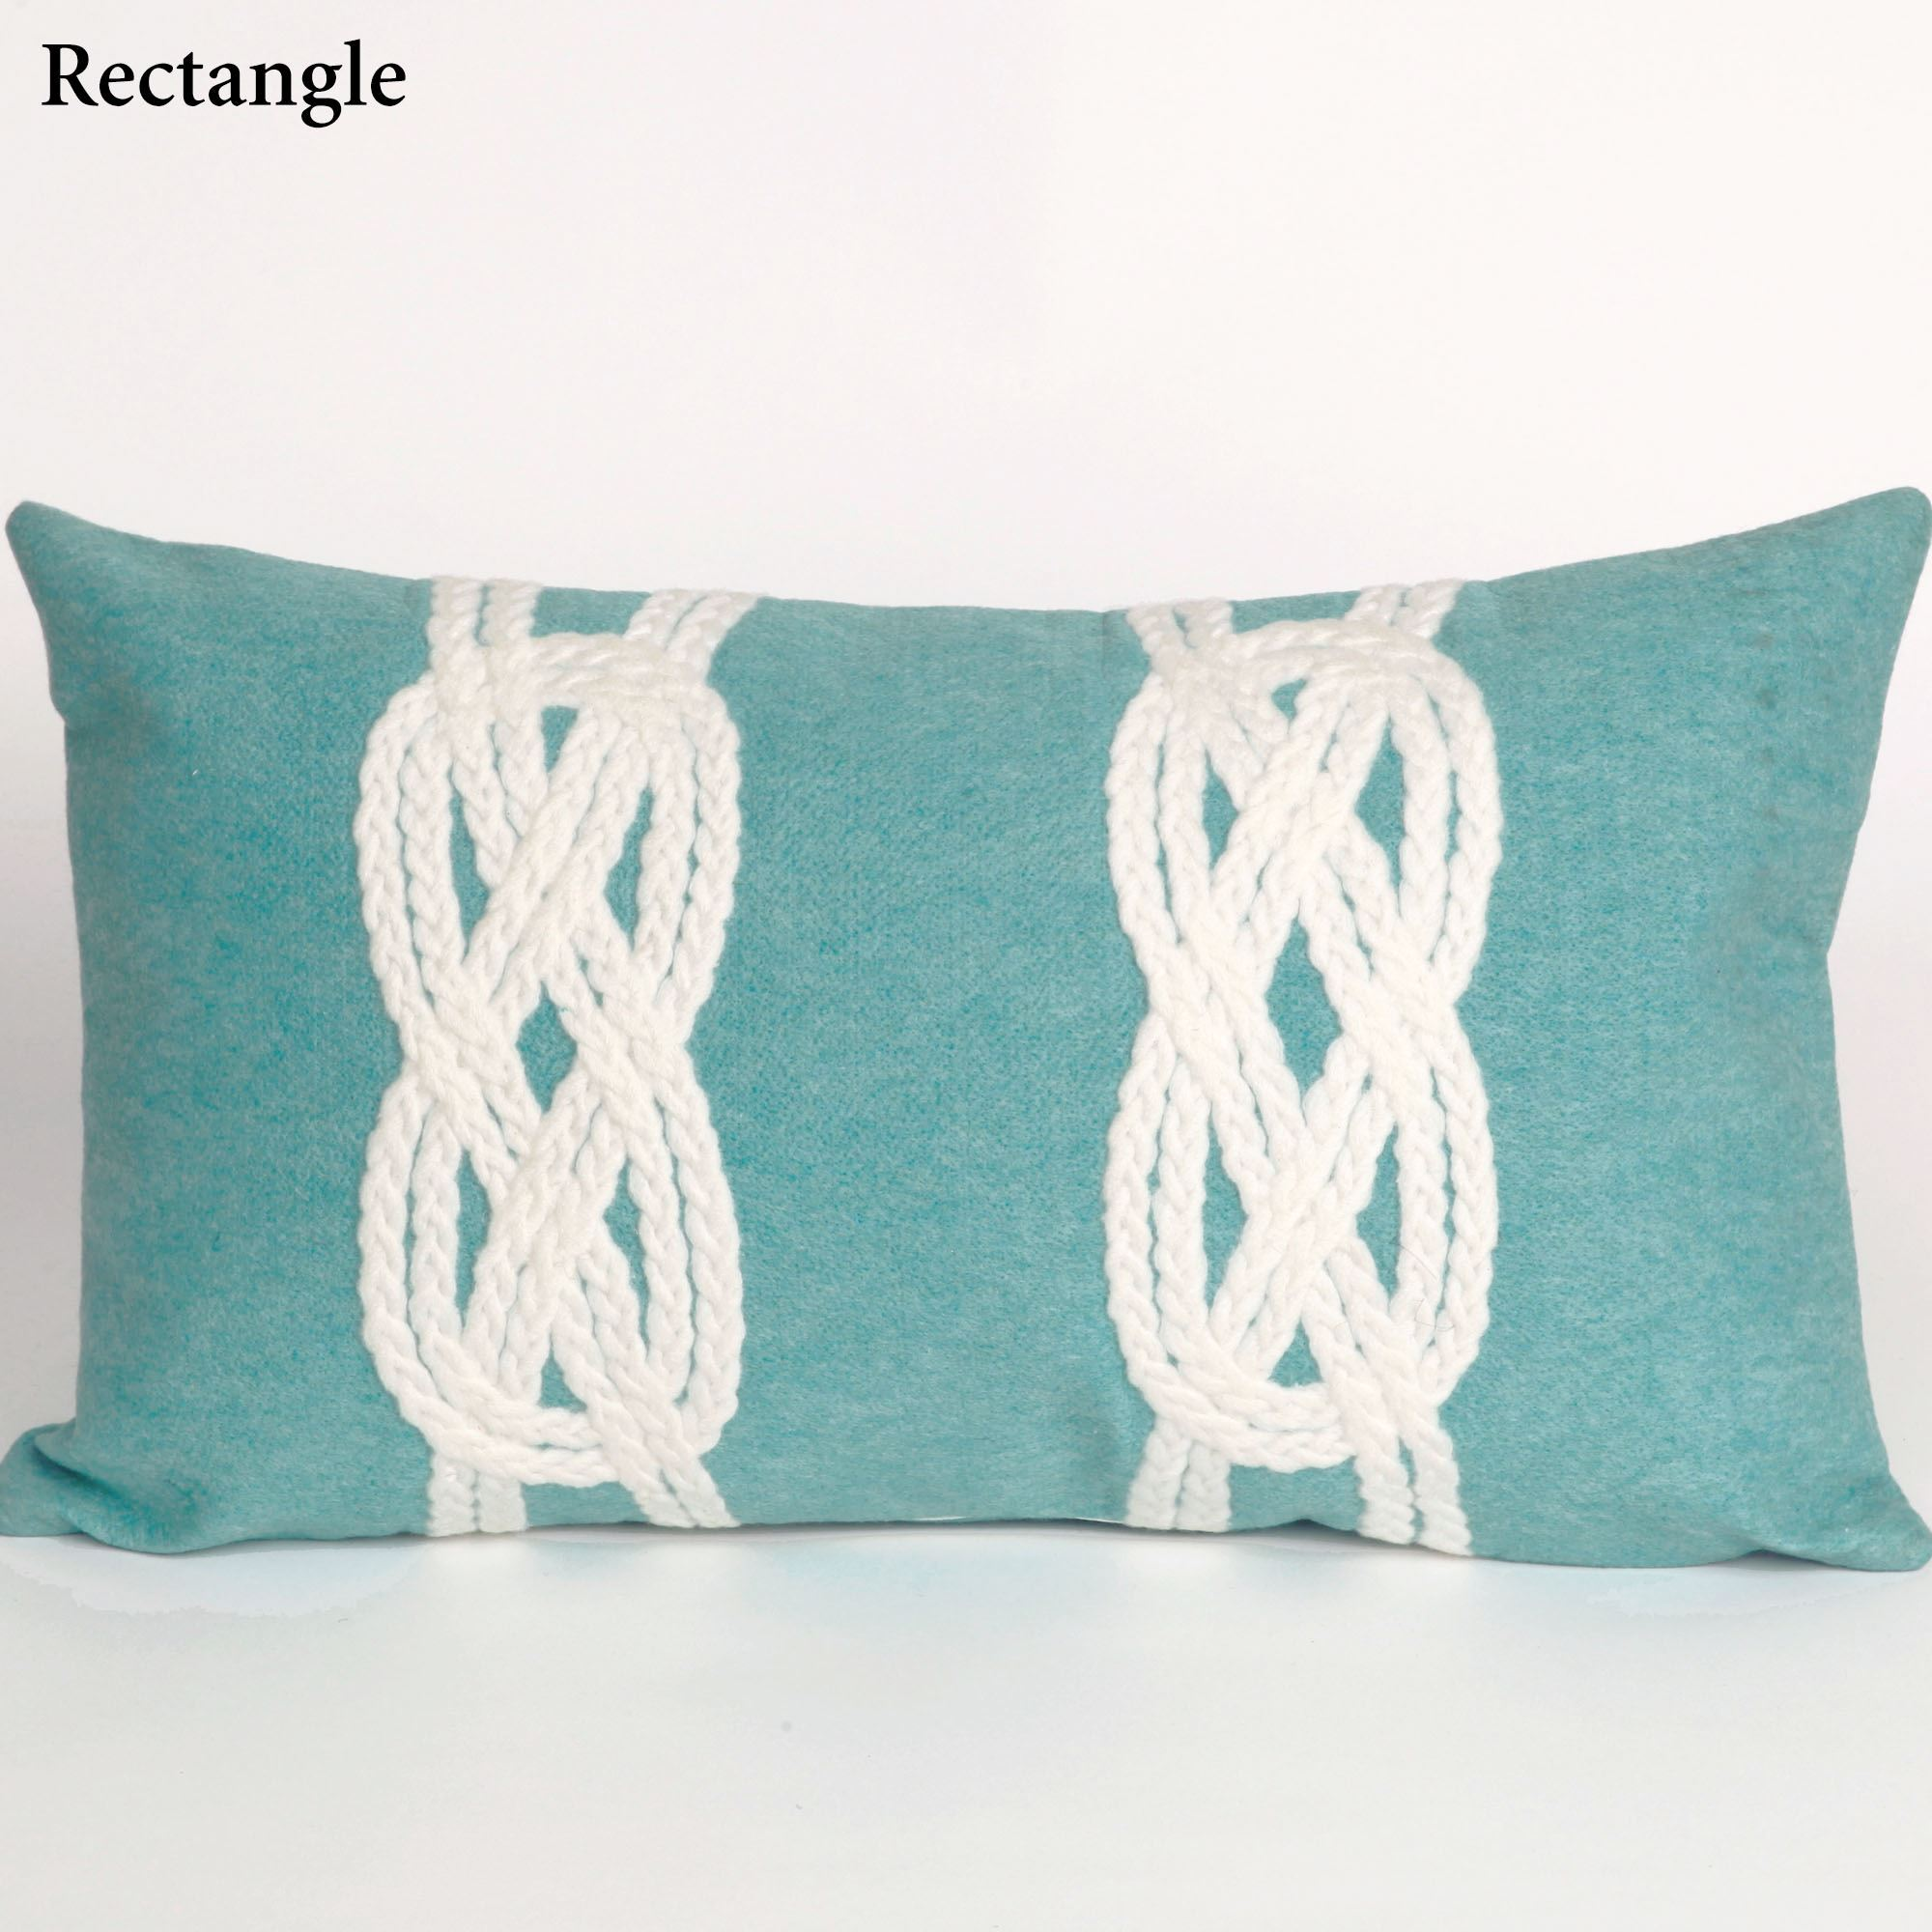 Double Knot Indoor Outdoor Pillow by Liora Manne